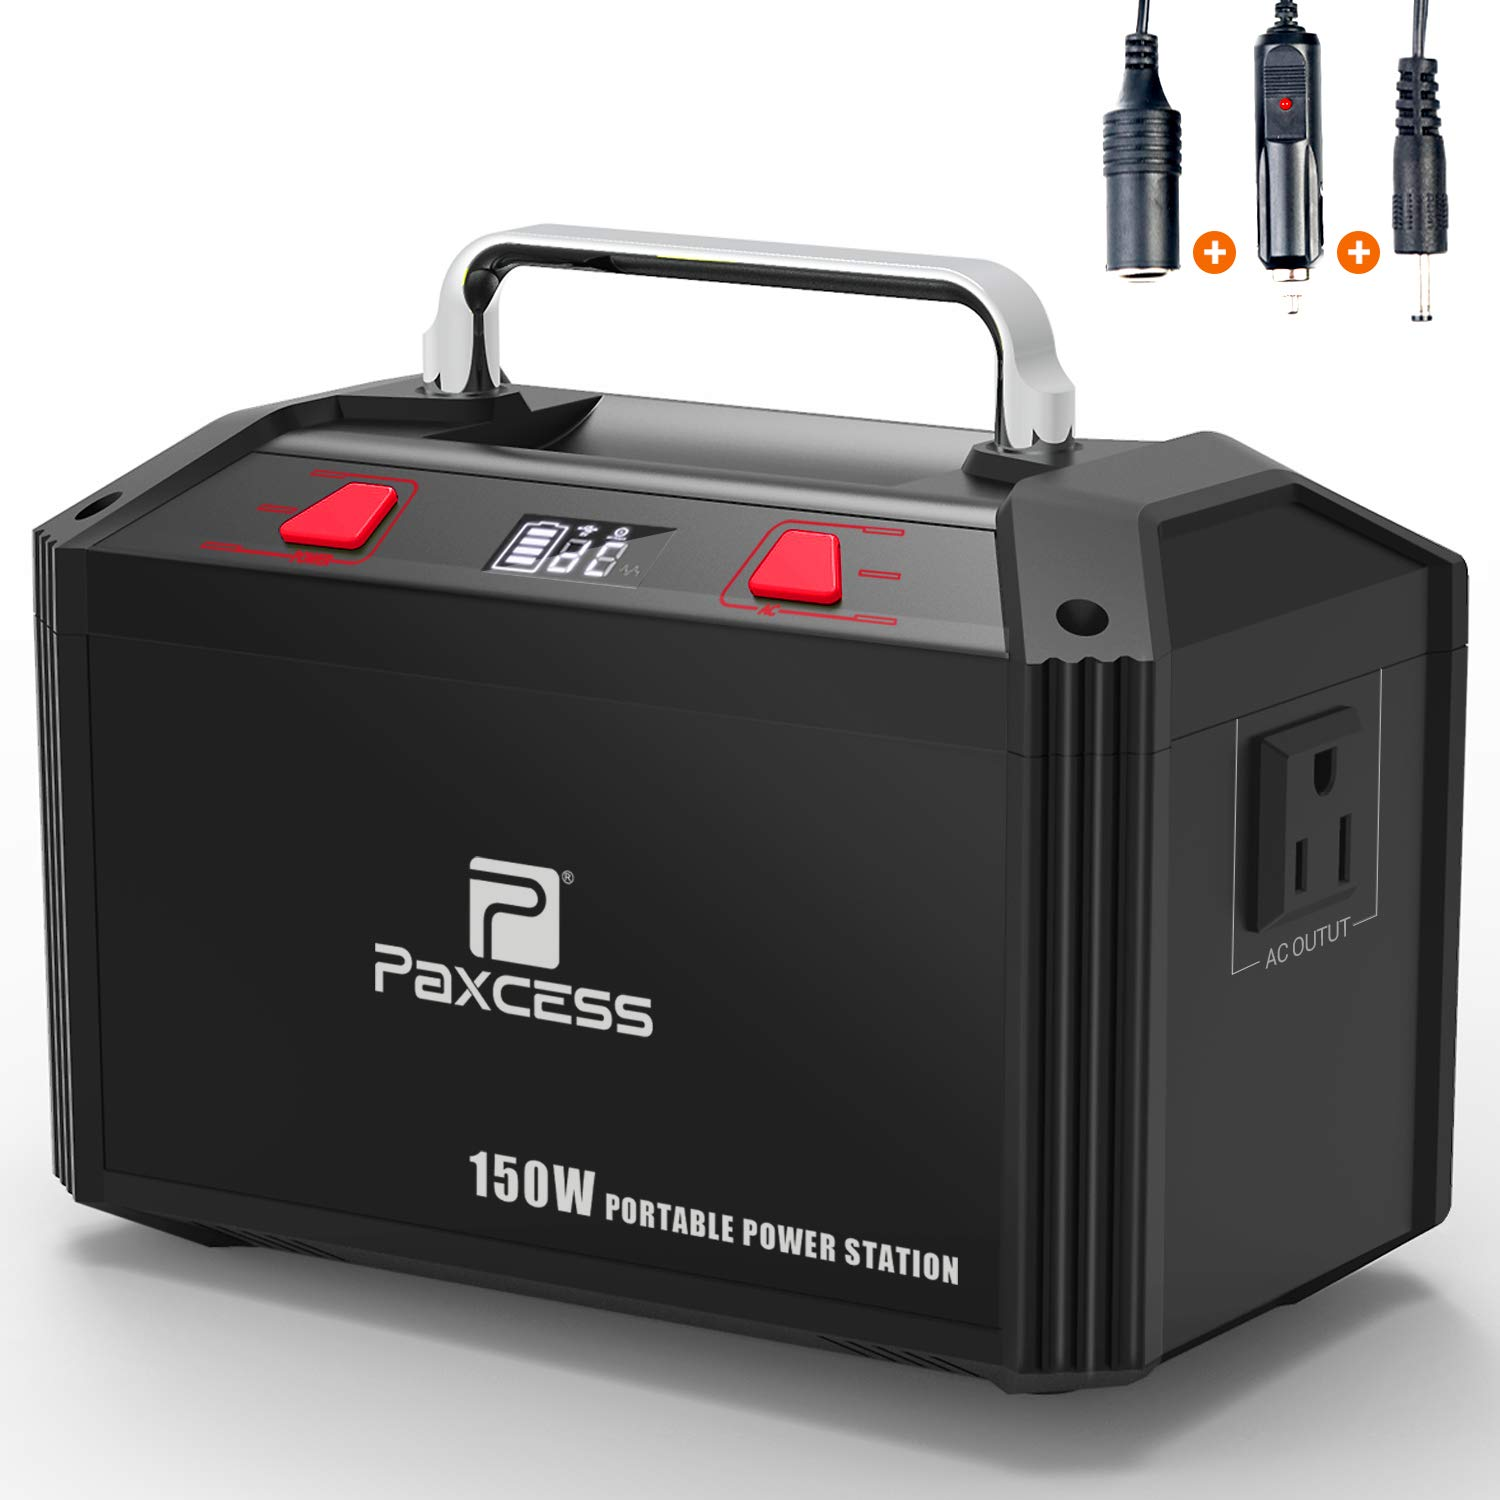 PAXCESS Generator Portable Power Station-[150W Upgraded]-Lithium Battery Pack Supply with 110V AC Outlet, 3 DC 12V Ports, 2 USB Port, Solar Electric Small Generators for Camping Travel Home Emergency by PAXCESS (Image #1)